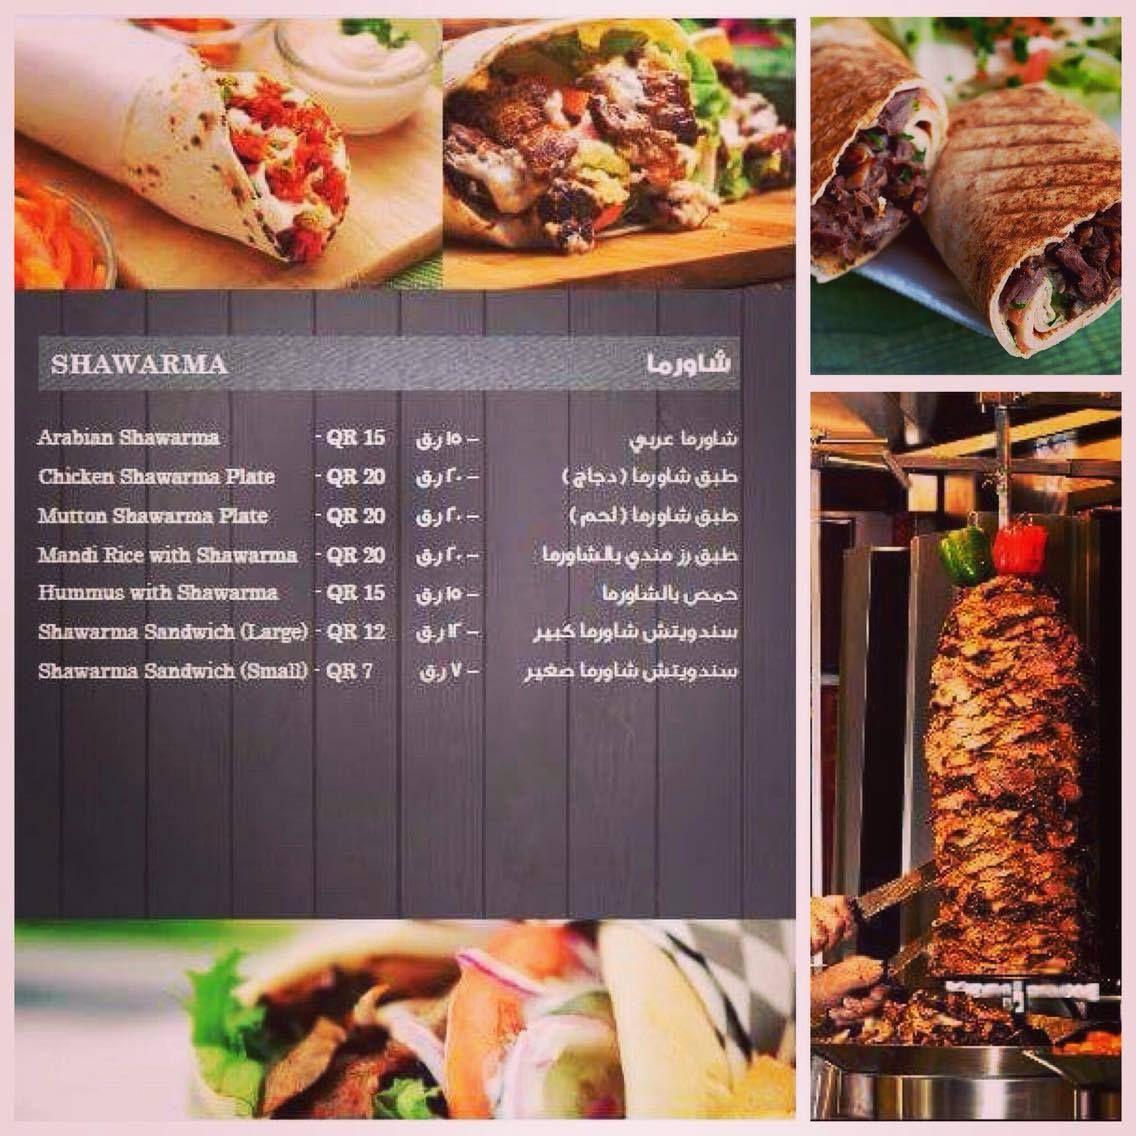 Roasted Slowly On All Sides Served Into A Sandwich Wrap In Lavash With Vegetables And Dressing Our Shawarma Wrap W Shawarma Wrap Sandwiches Chicken Shawarma